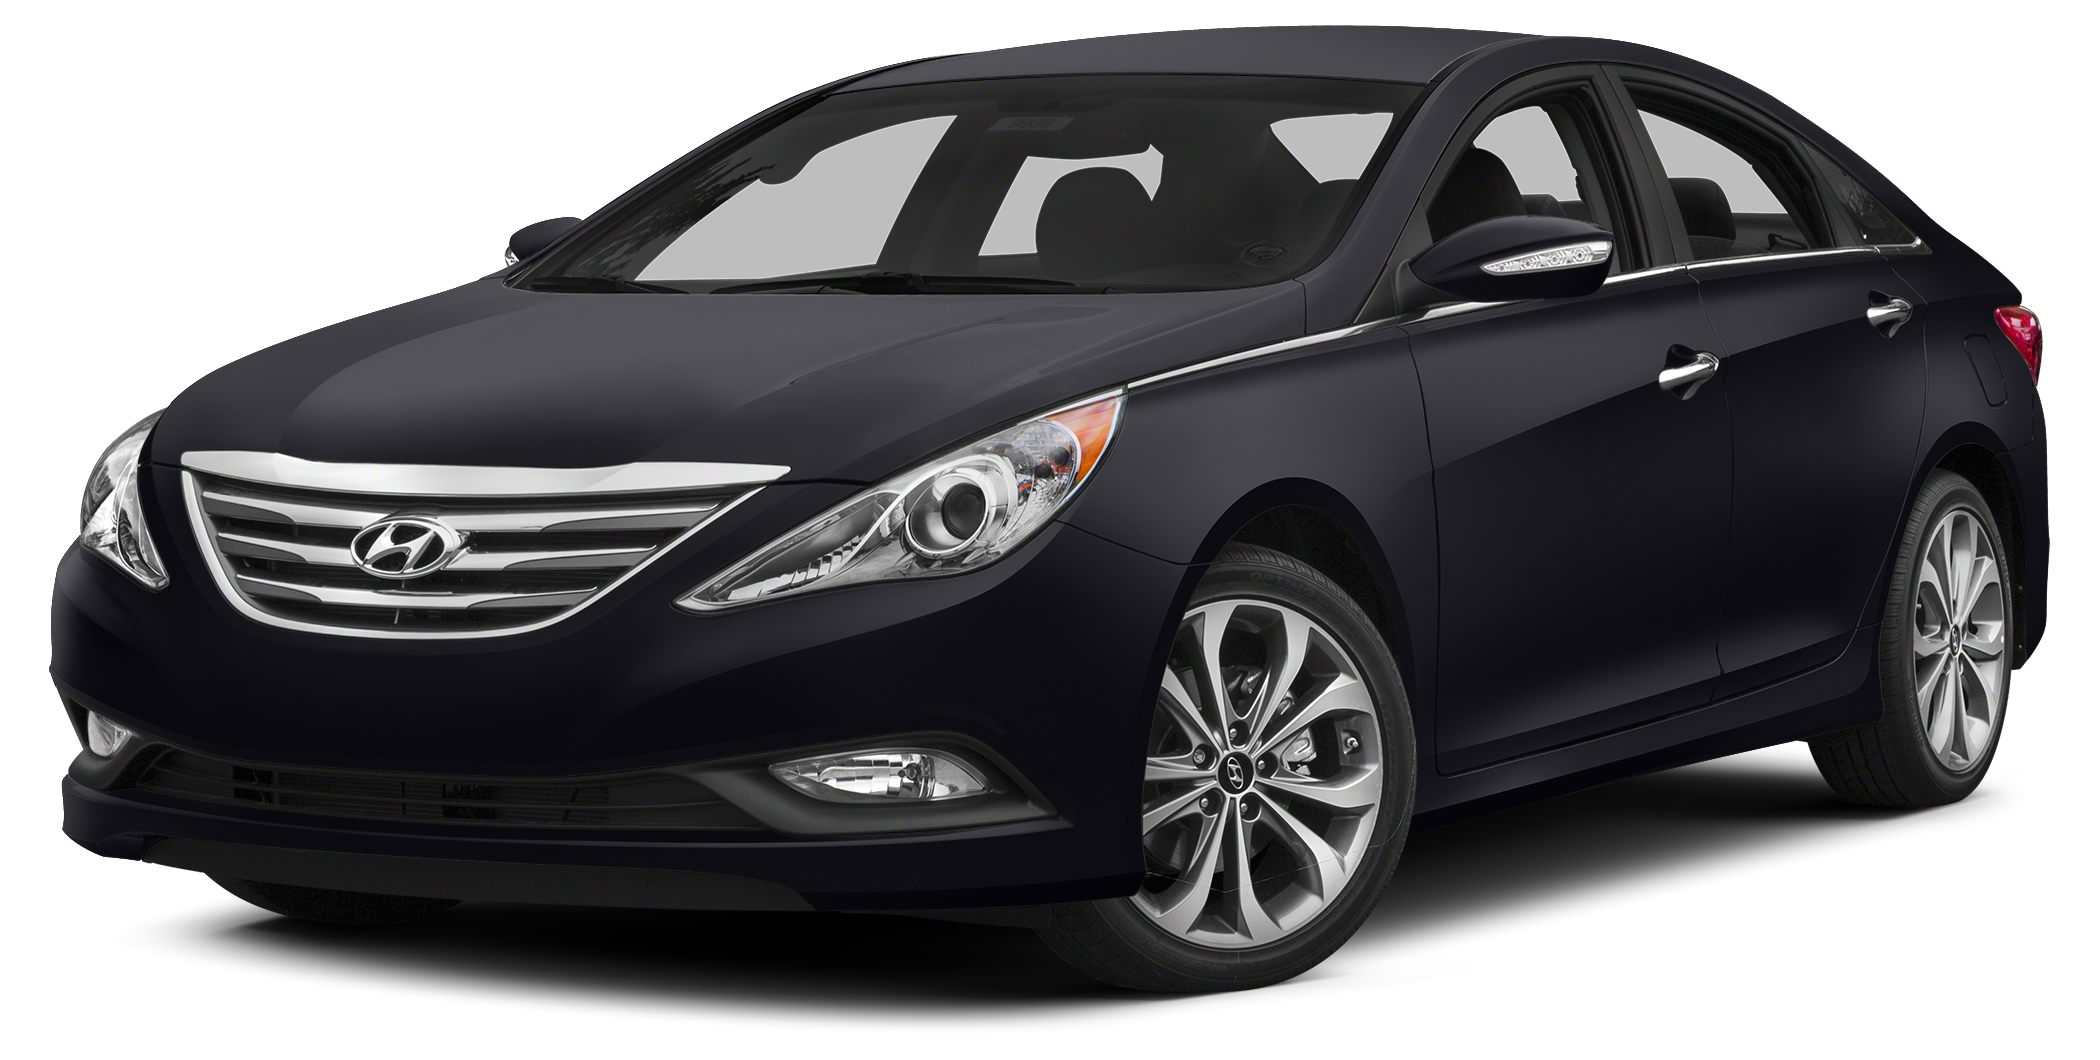 2014 Hyundai Sonata GLS HYUNDAI CERTIFIED - ALL SERVICED -- This one owner Sonata comes with comfo